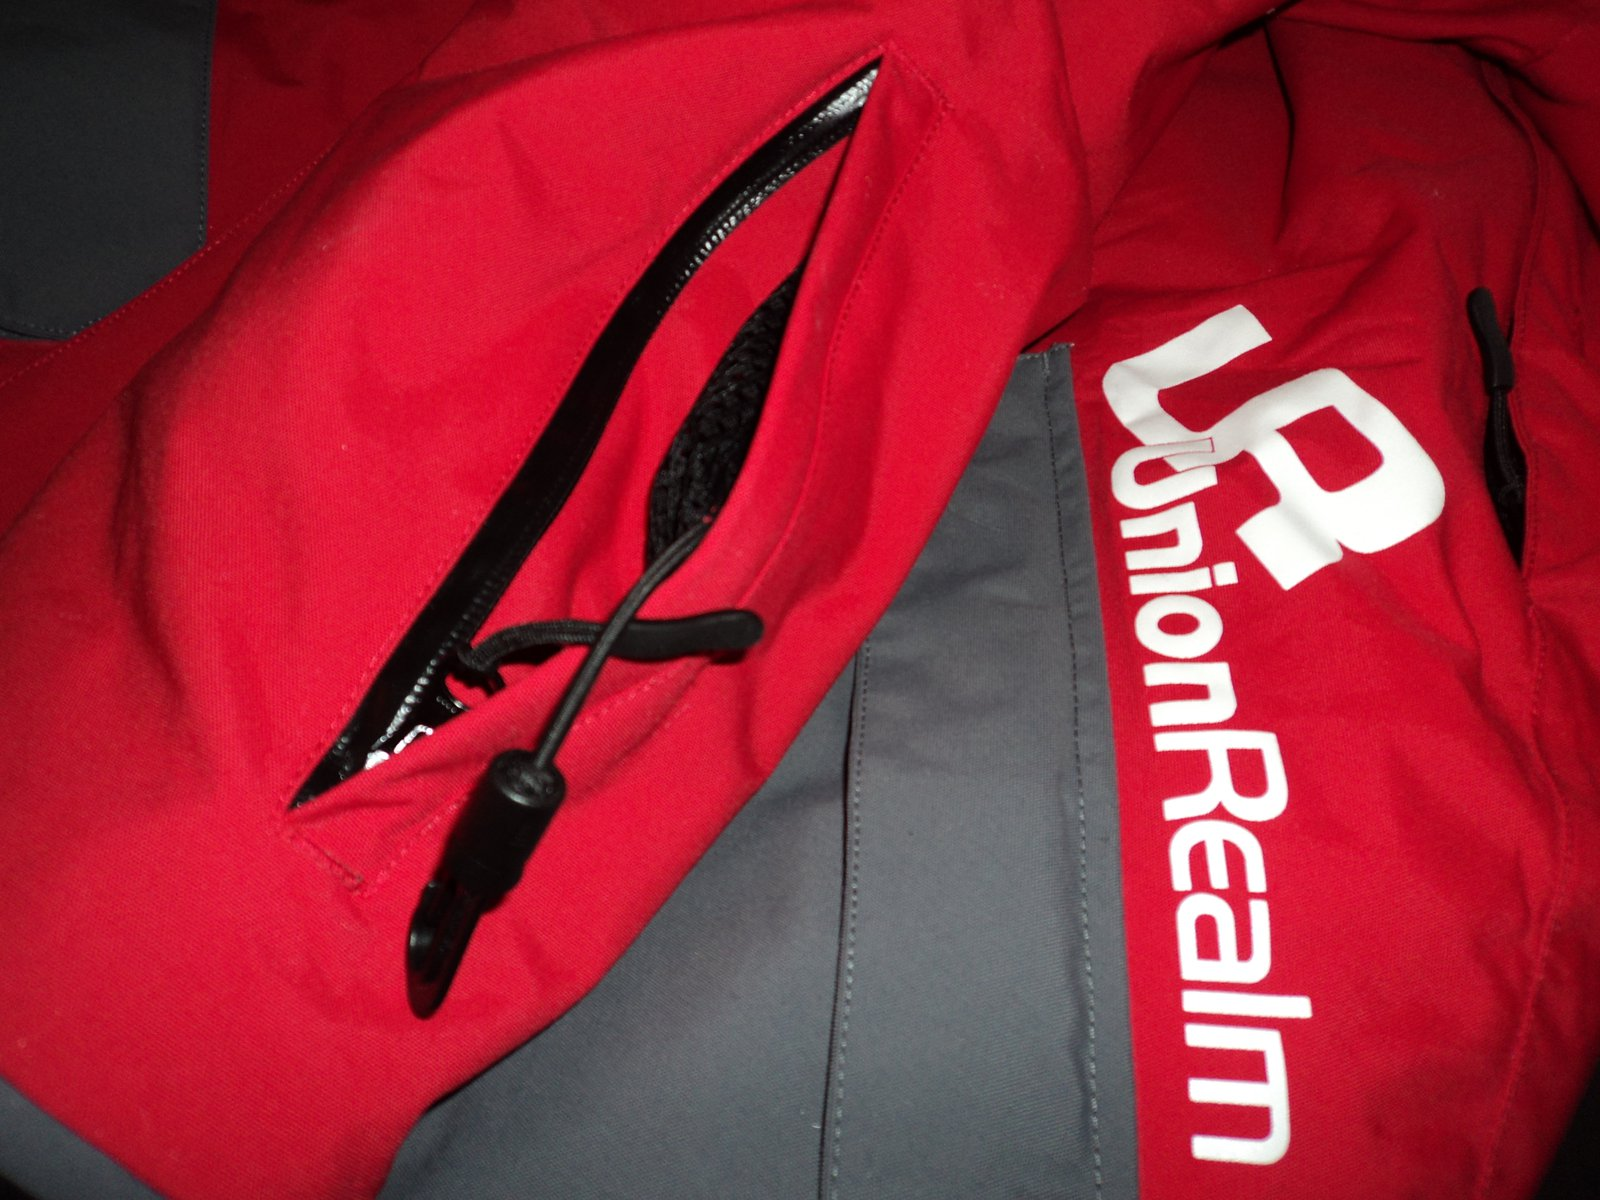 Union Realm Outerwear